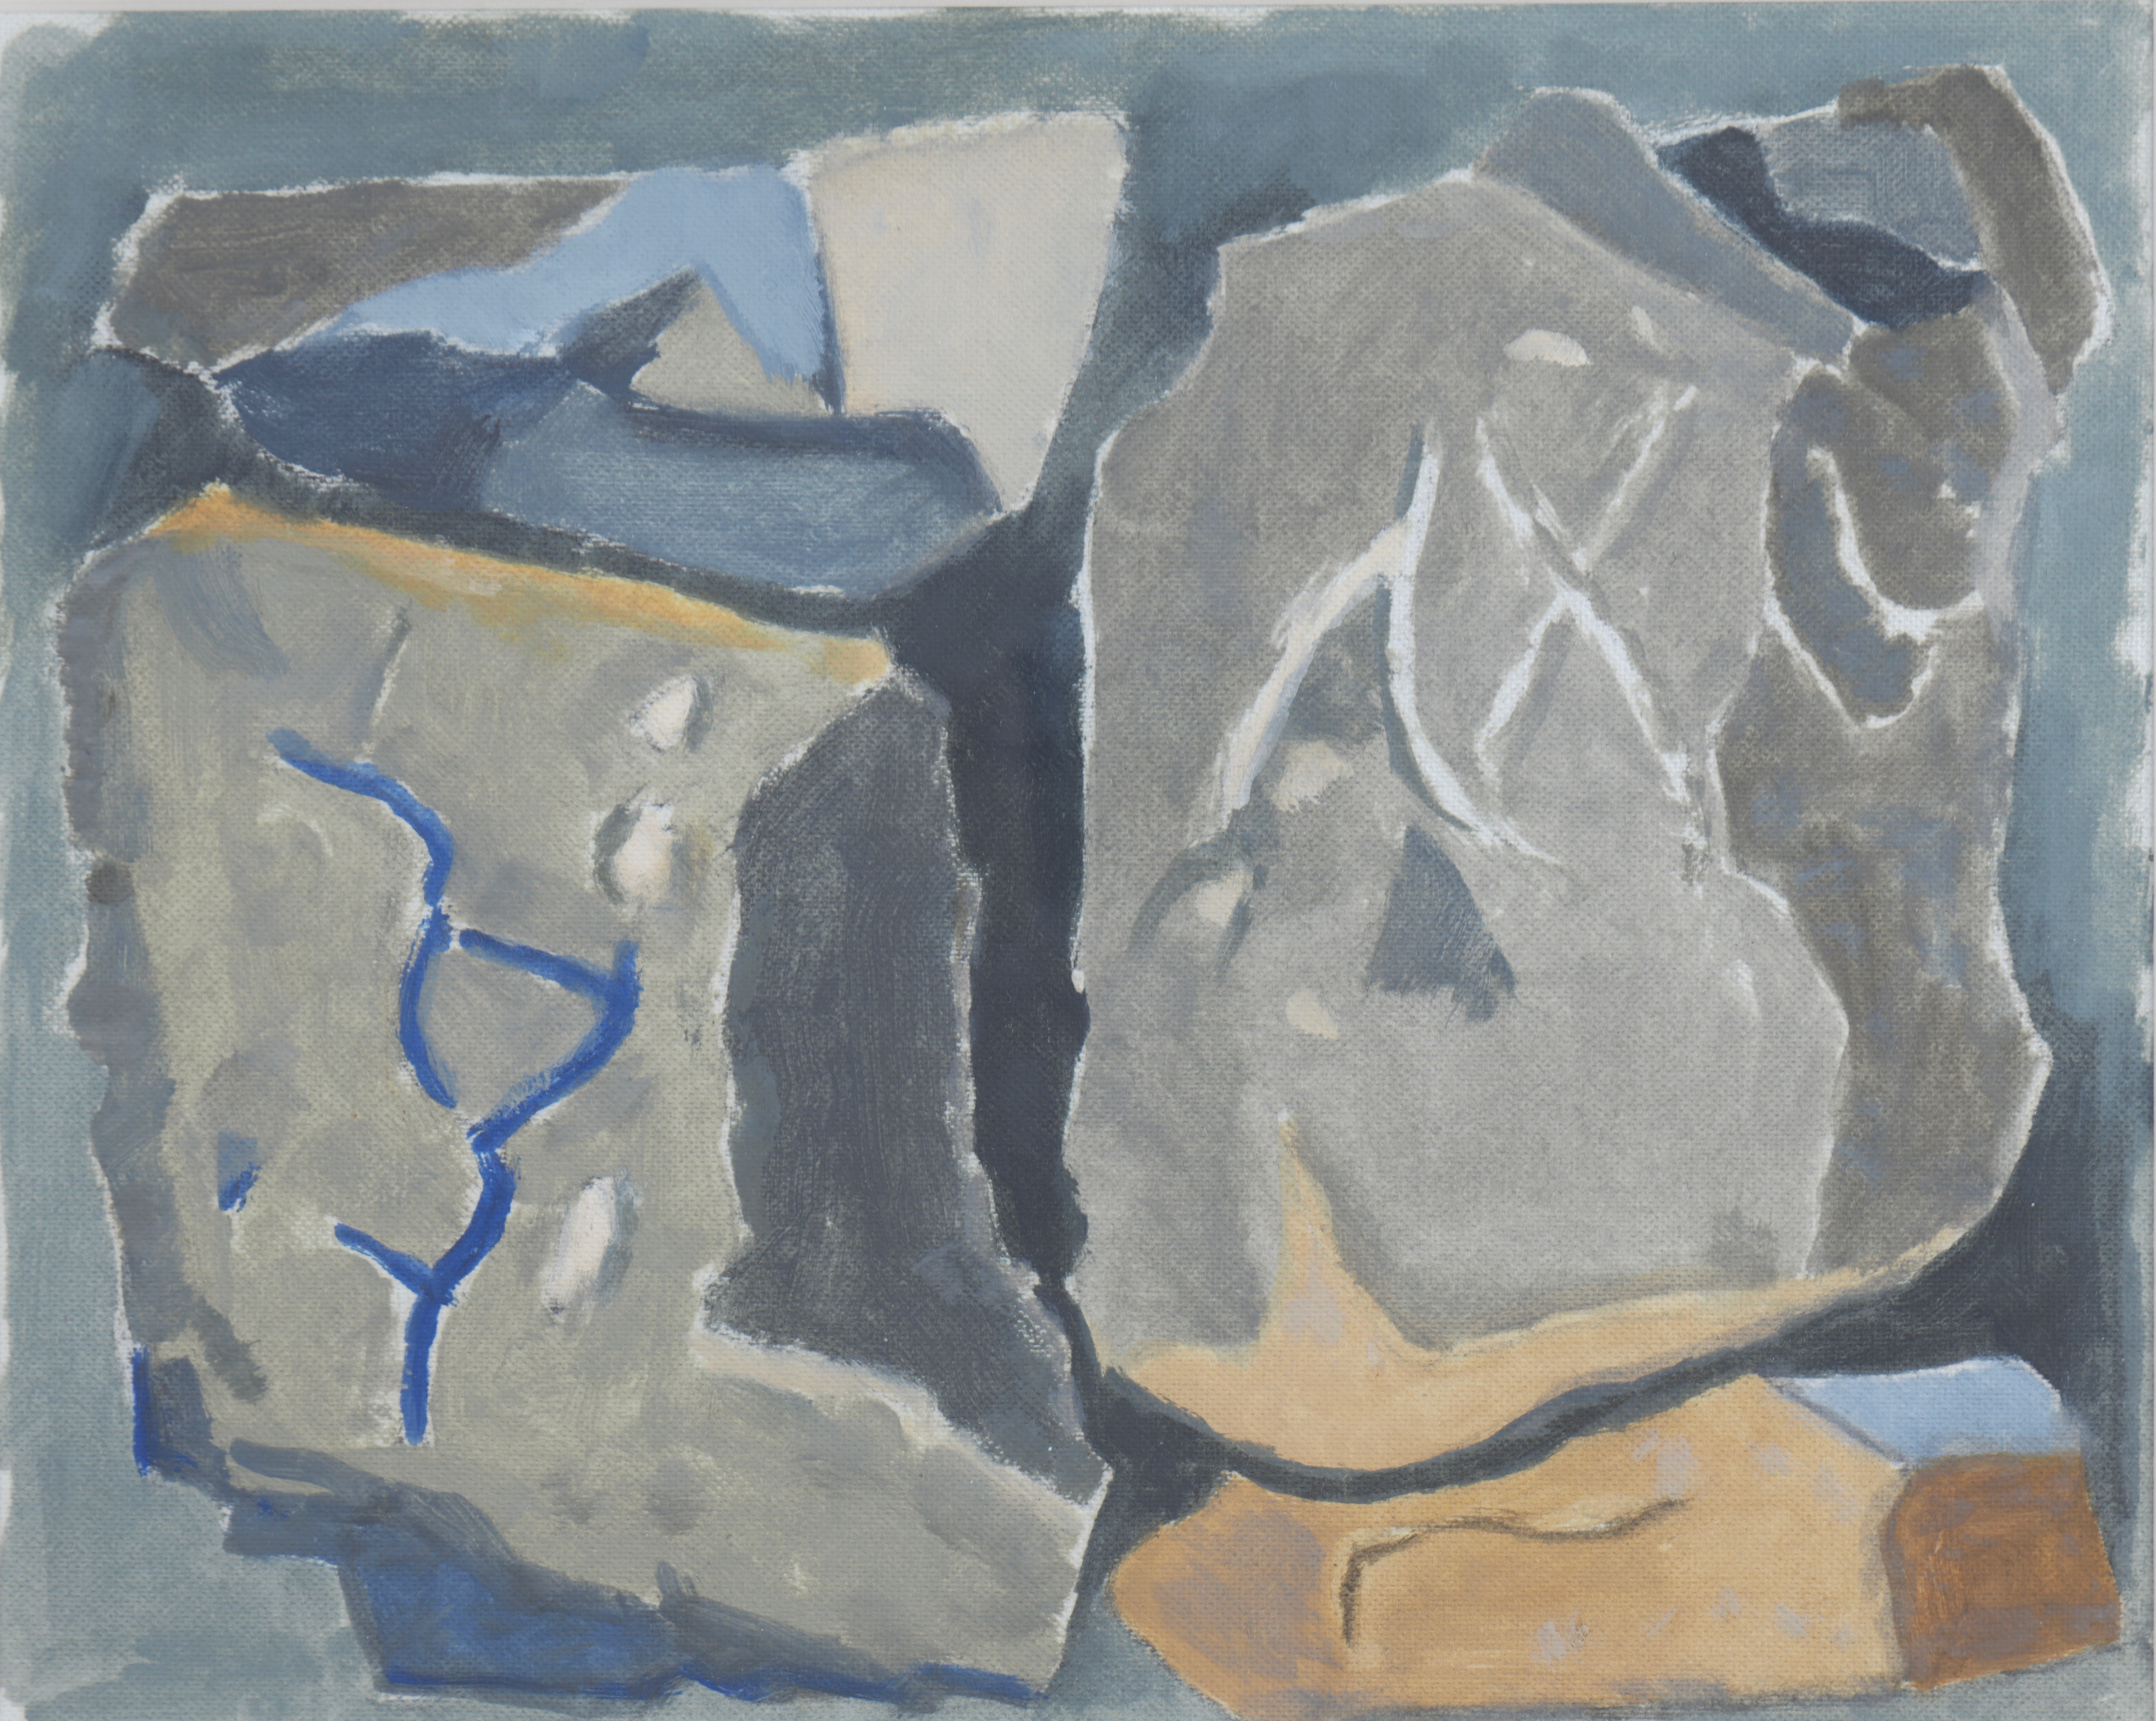 Untitled (Rock Series)